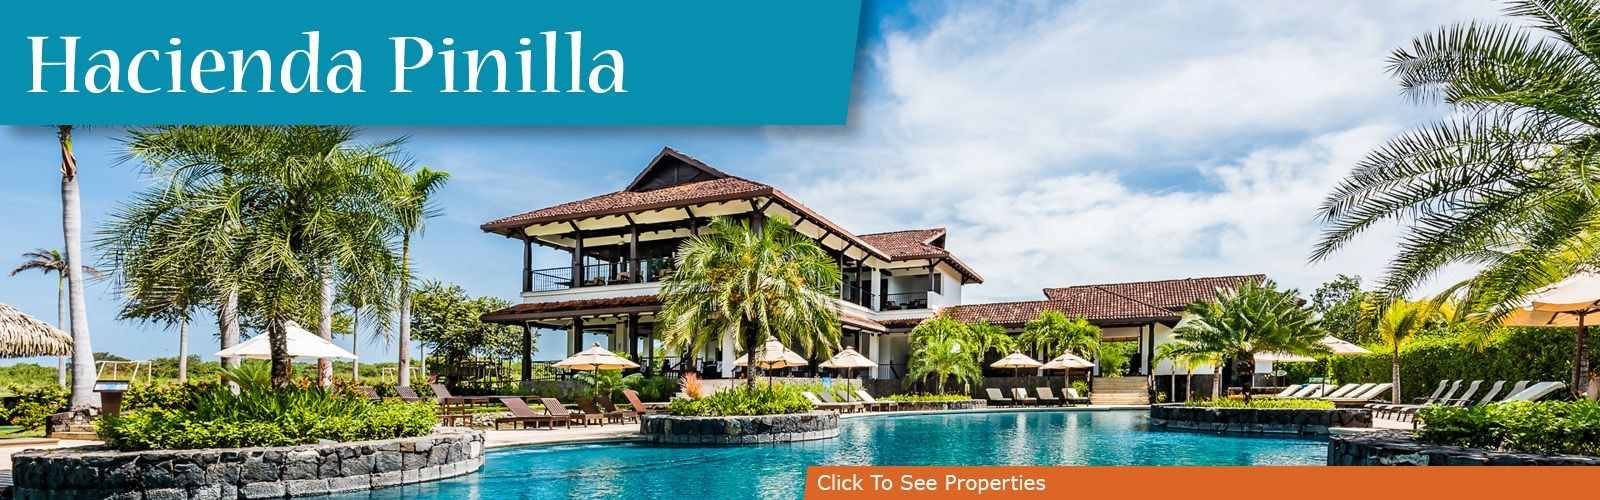 Hacienda Panilla in Guancaste, Costa Rica Overseas Pacific Realty